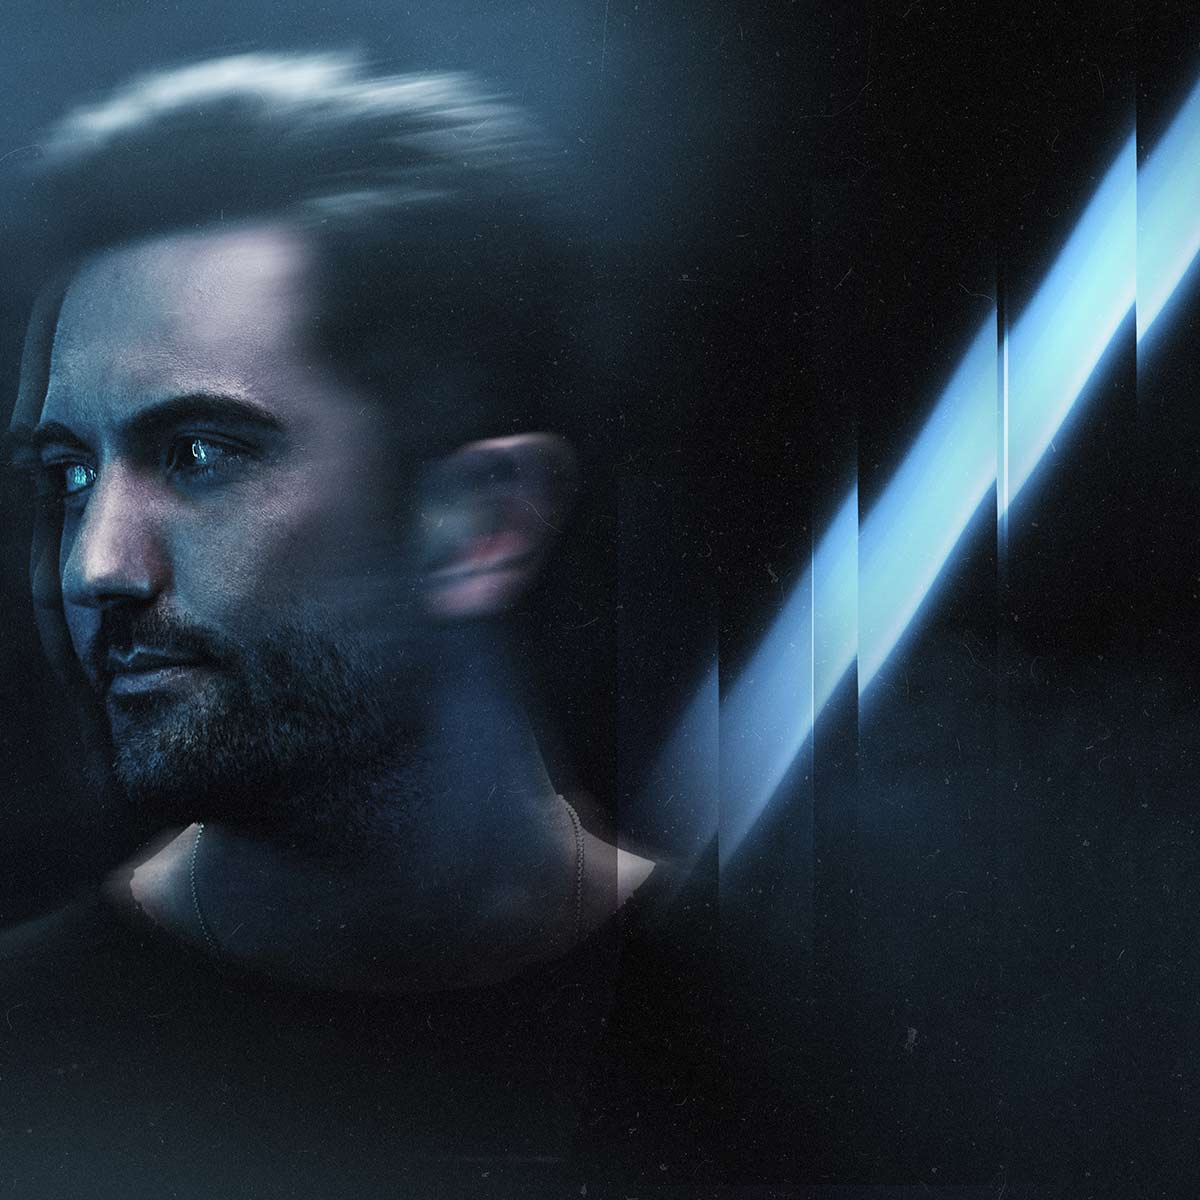 """Deniz Koyu releases new single """"Without You"""" as part 2 of his summer romance storyline"""